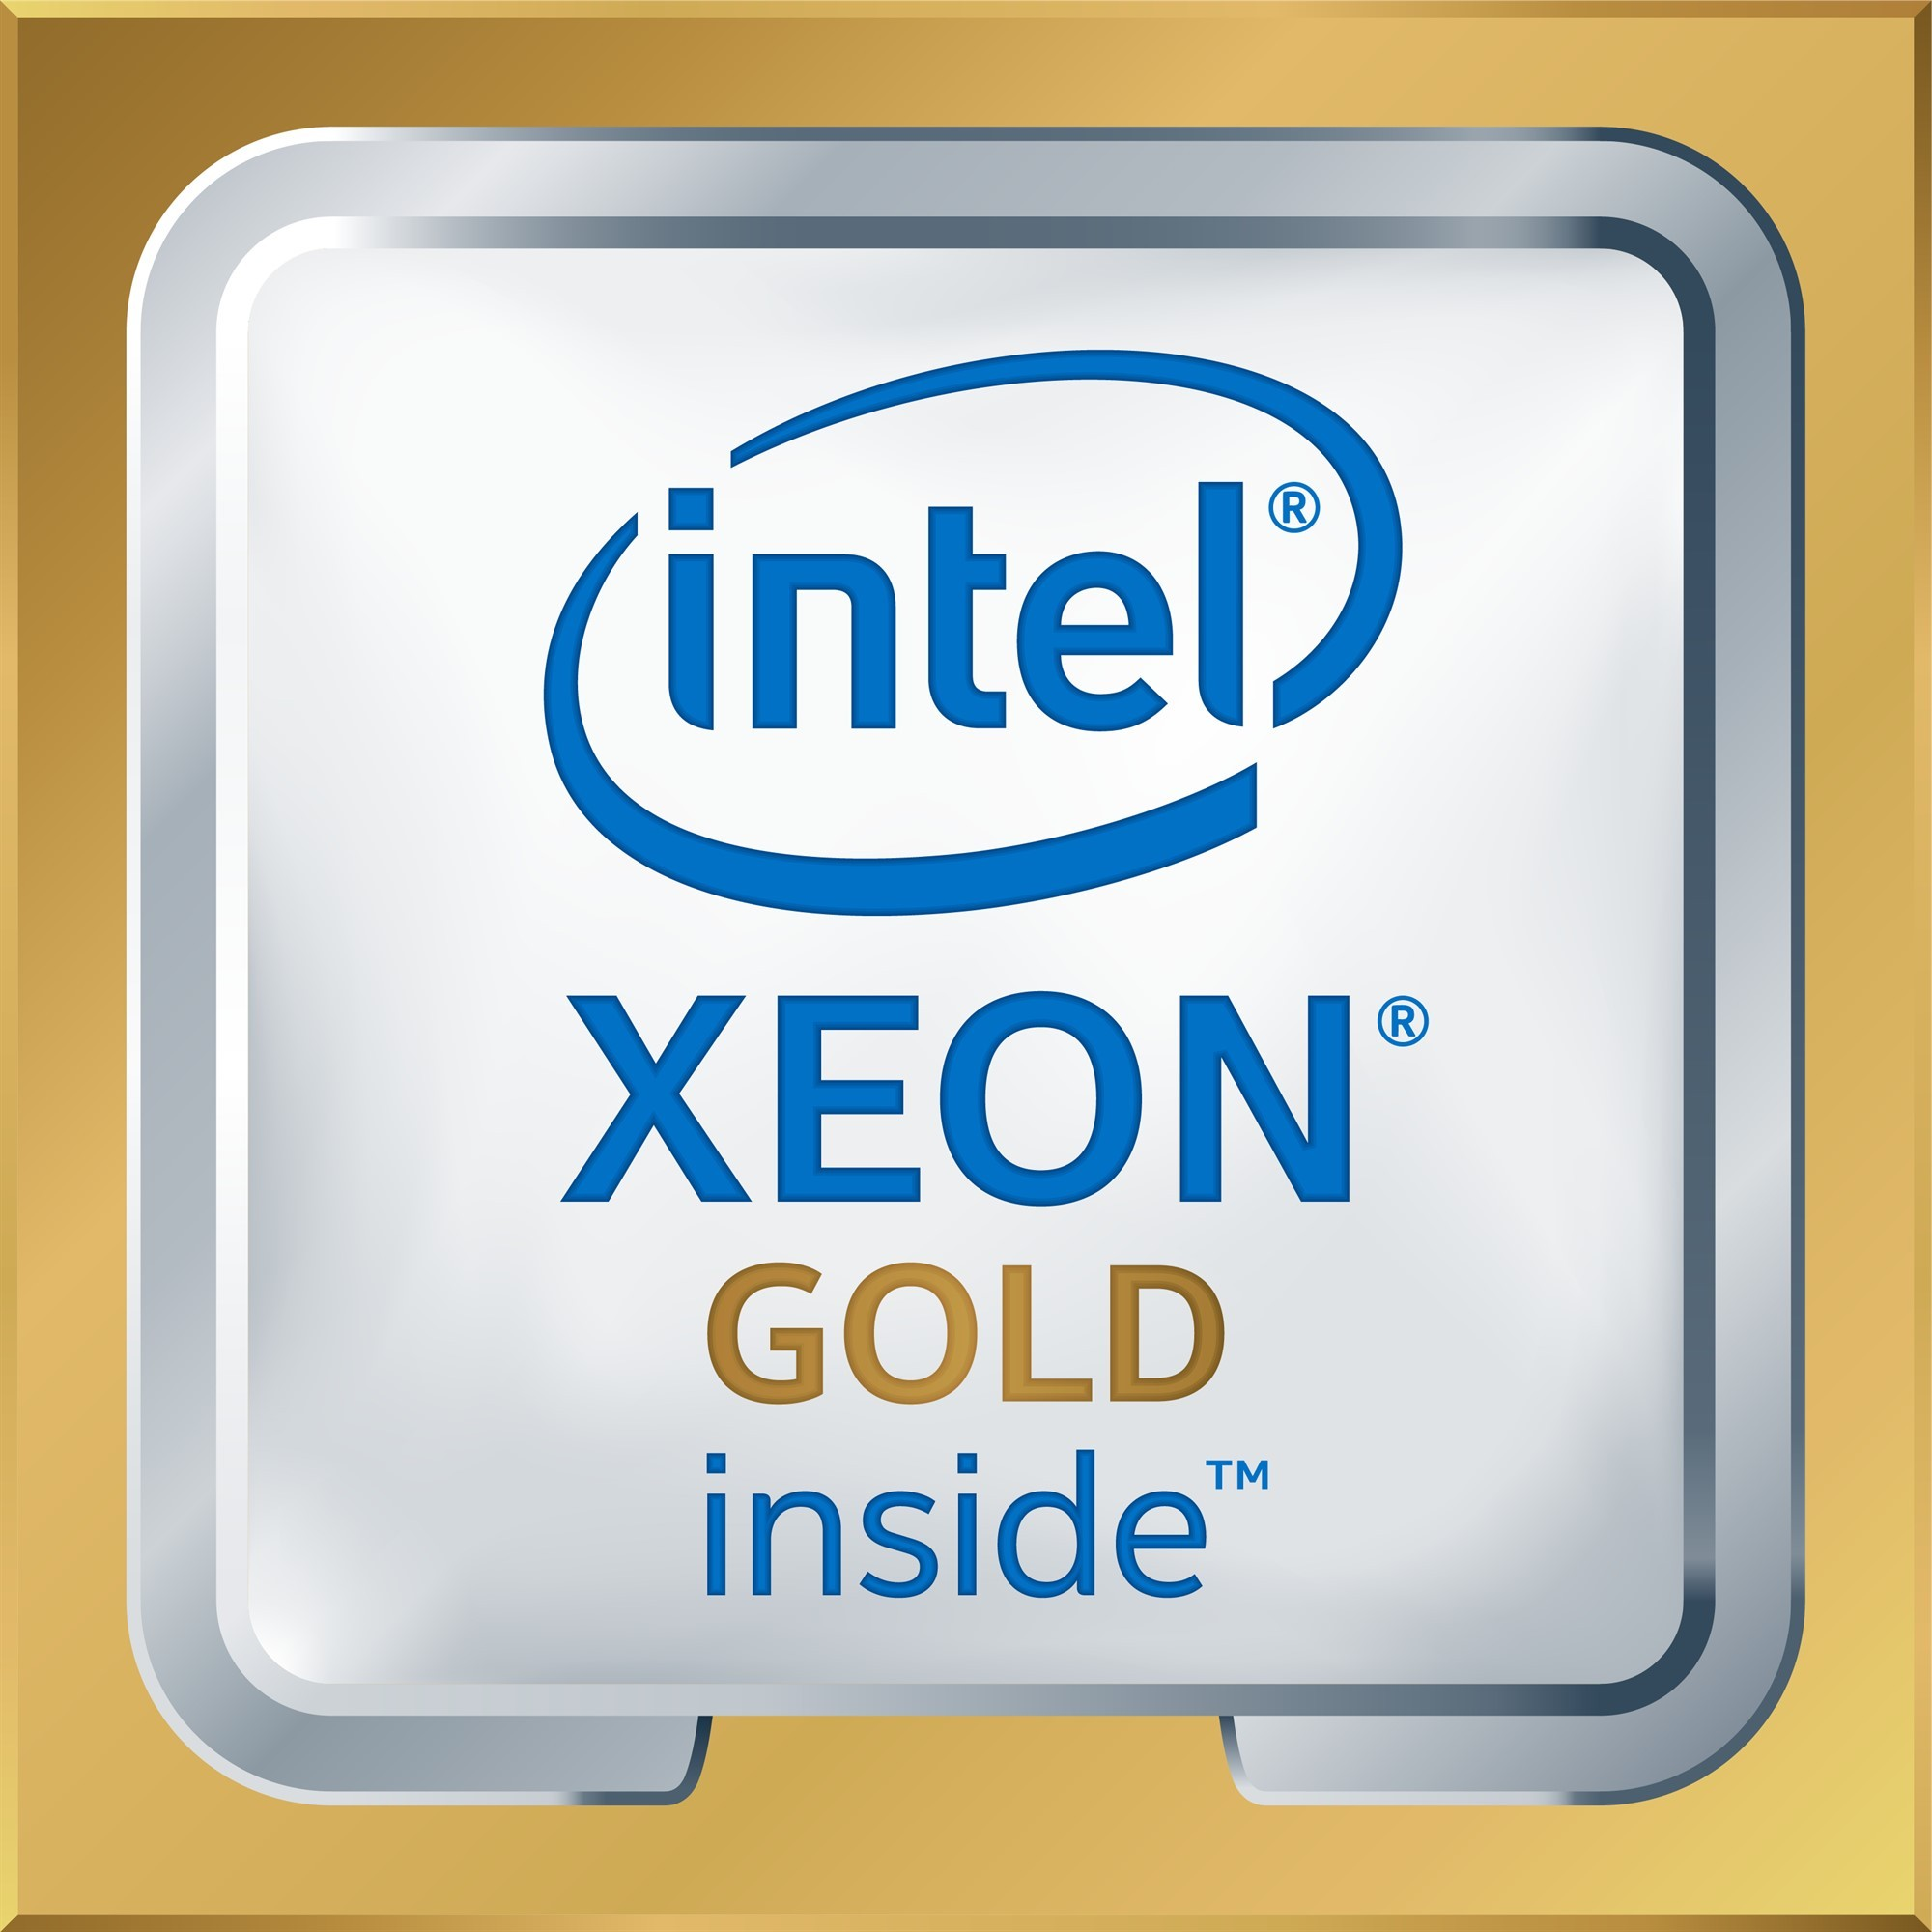 INTEL XEON GOLD 5122 PROCESSOR (16.5M CACHE, 3.60 GHZ) 3.60GHZ 16.5MB L3